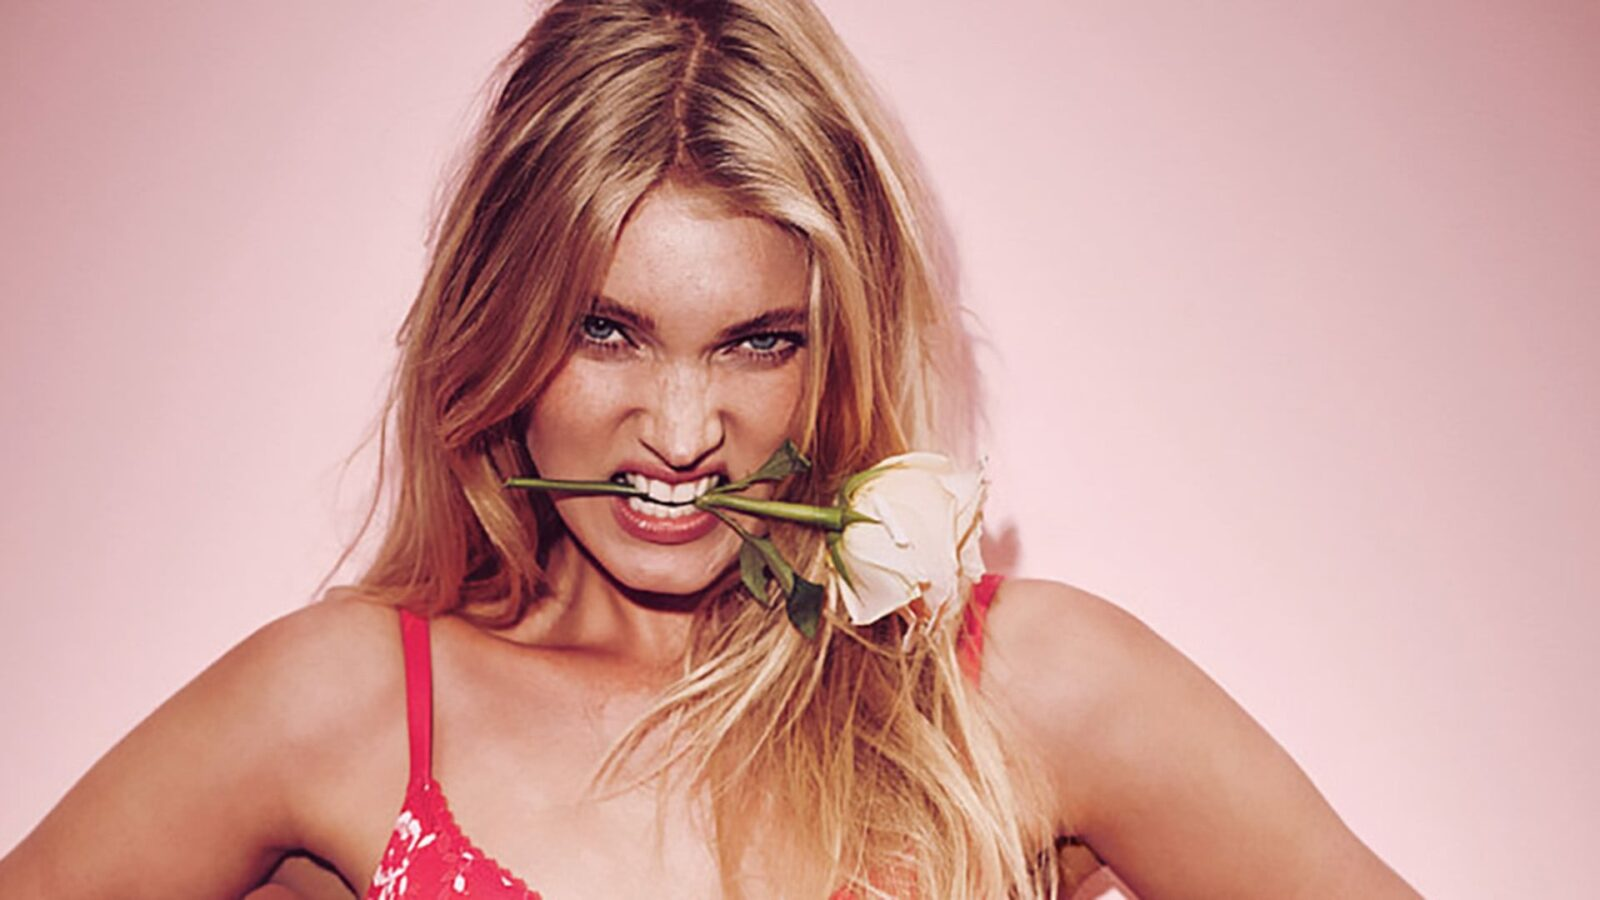 pin elsa hosk wallpaper - photo #35